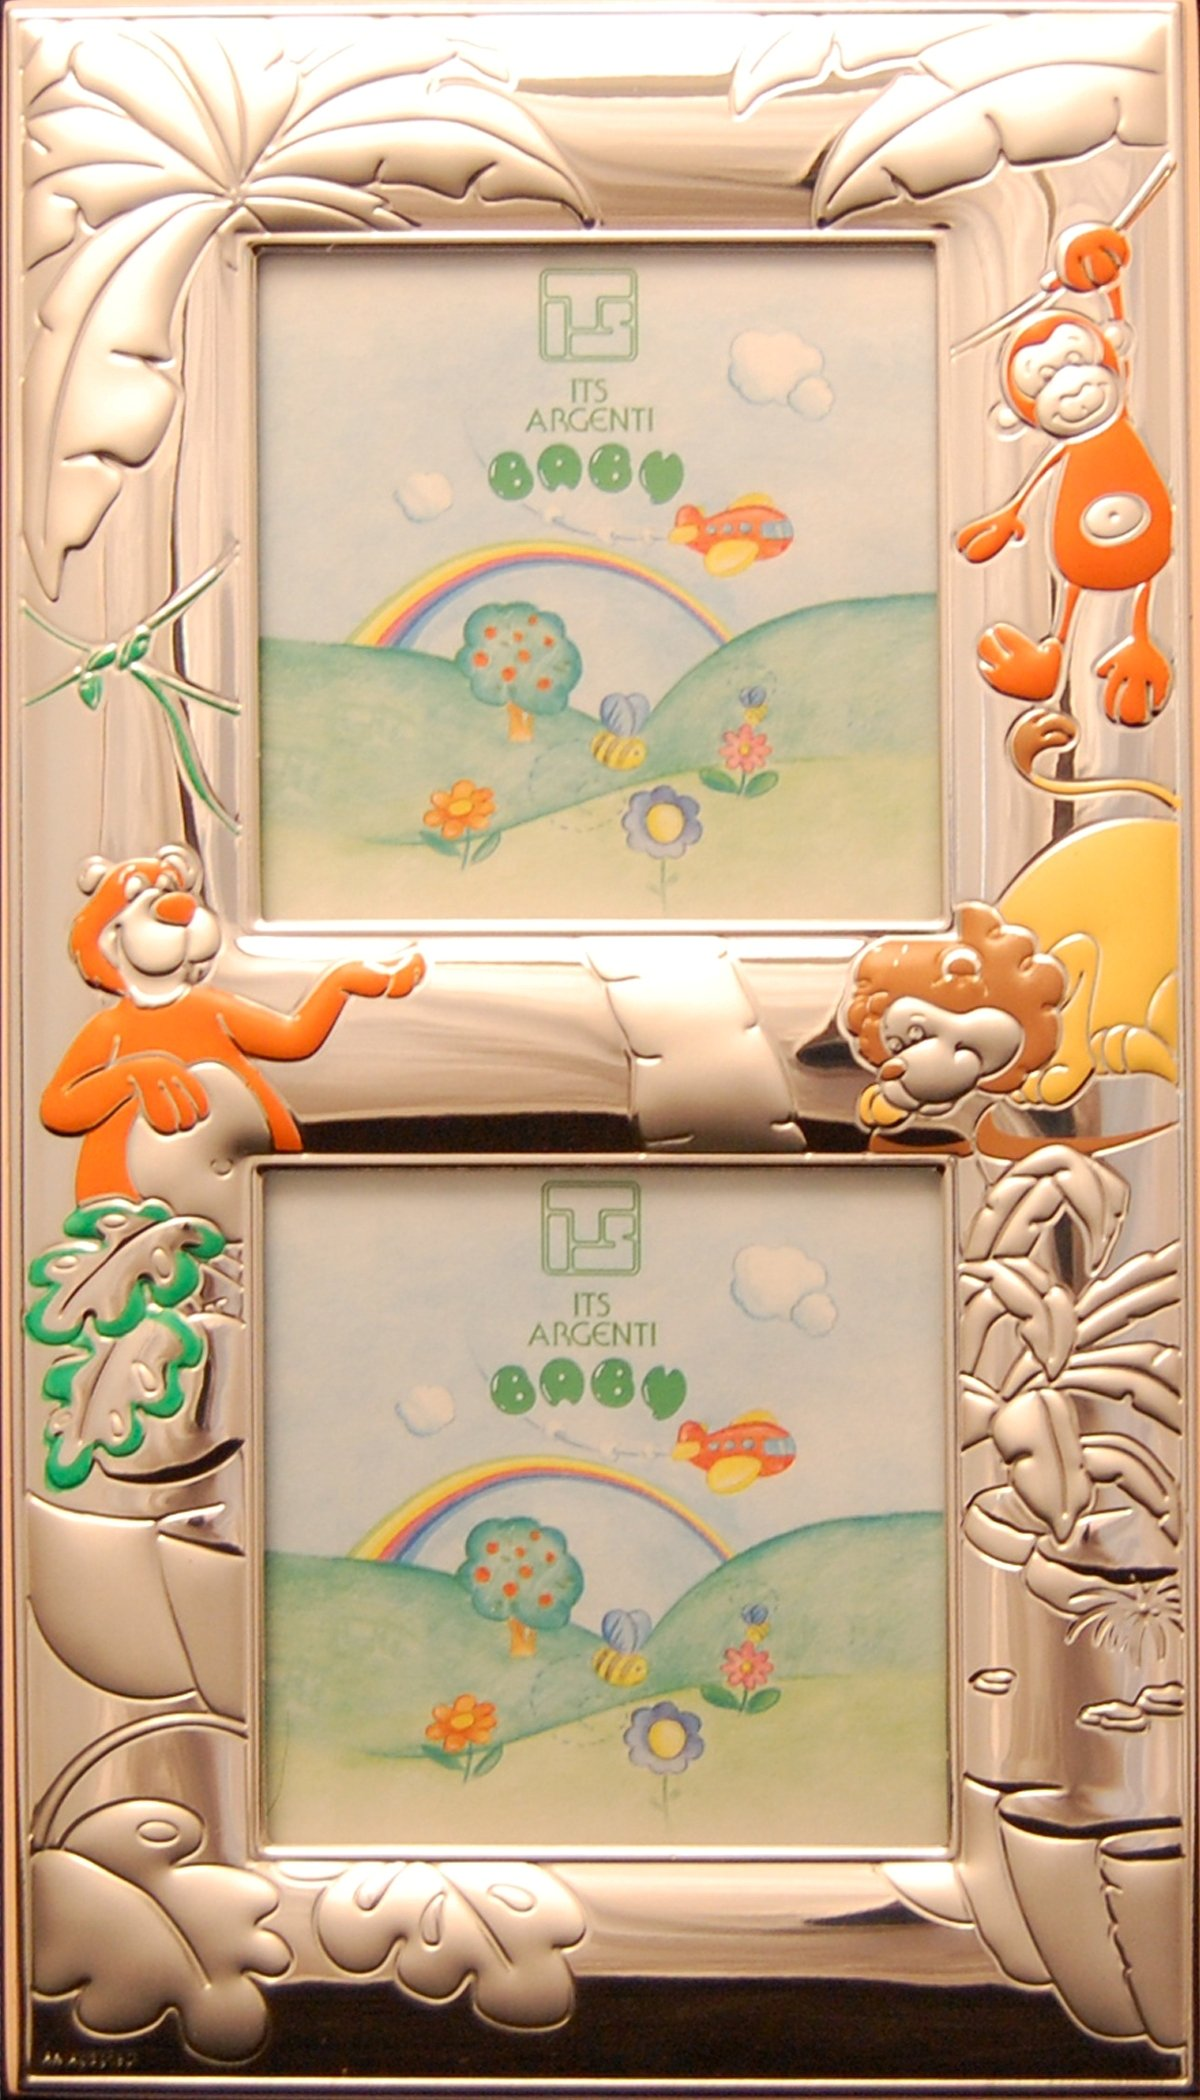 CHILDREN DOUBLE STERLING SILVER PICTURE FRAME - The JUNGLE . Made in Italy